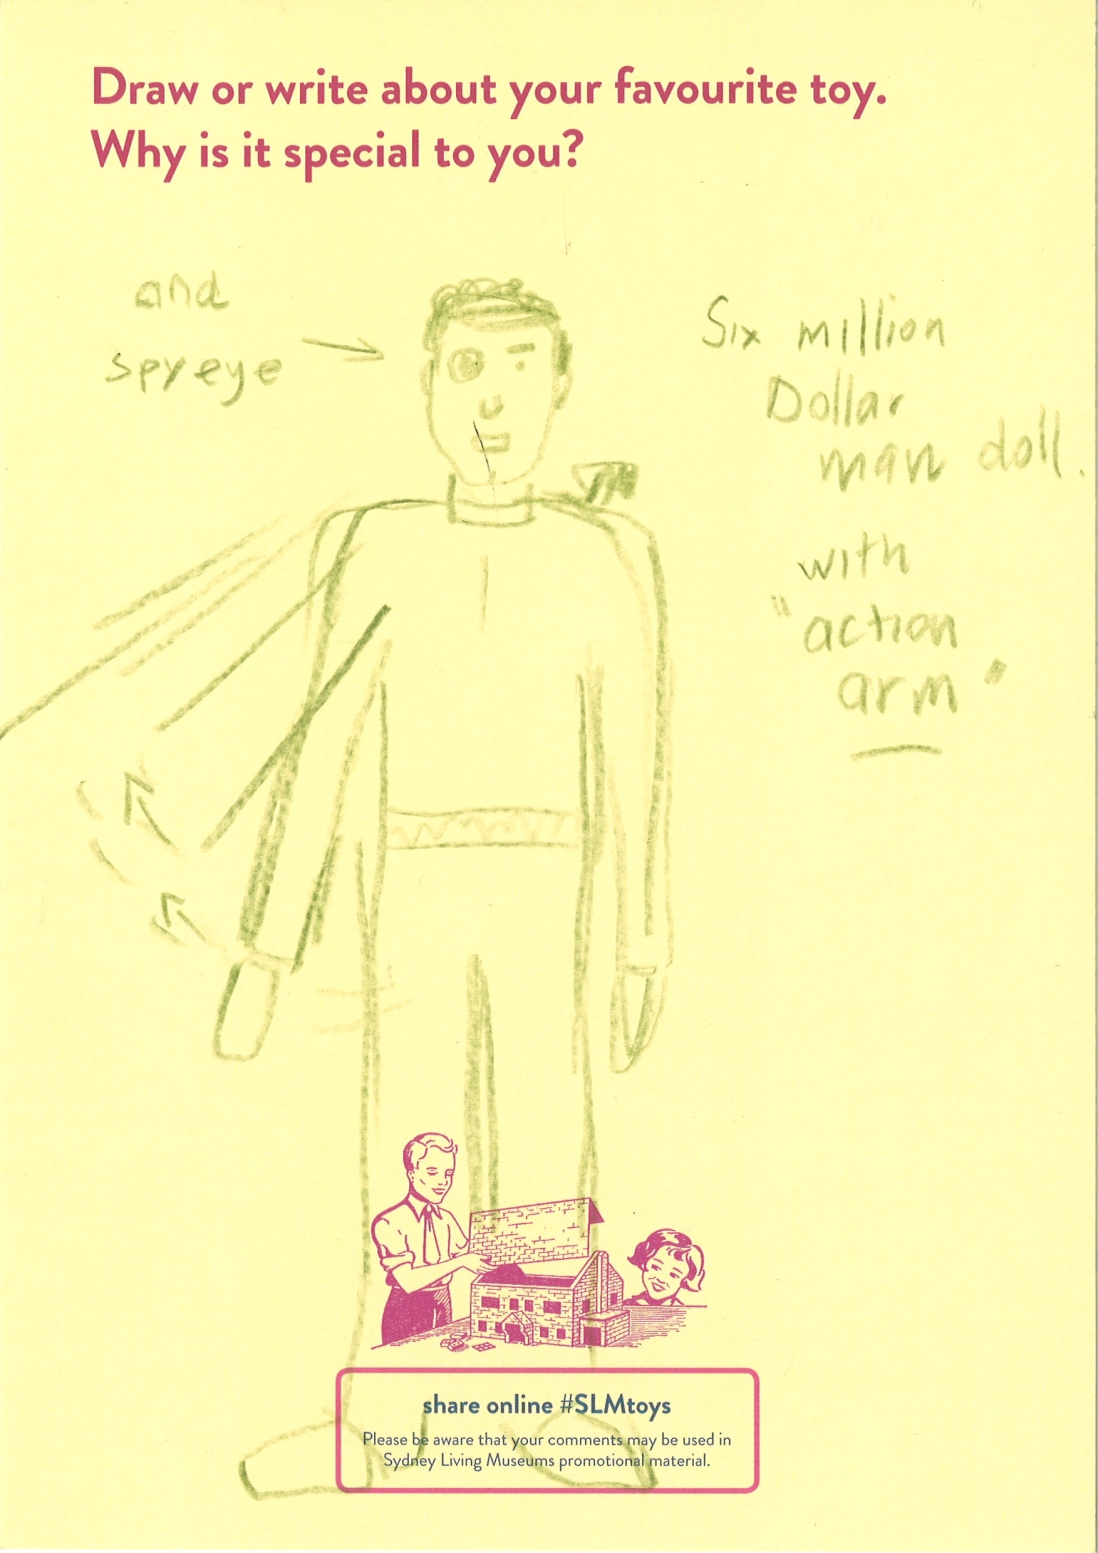 A drawing of the six million dollar man action figure with spy eye